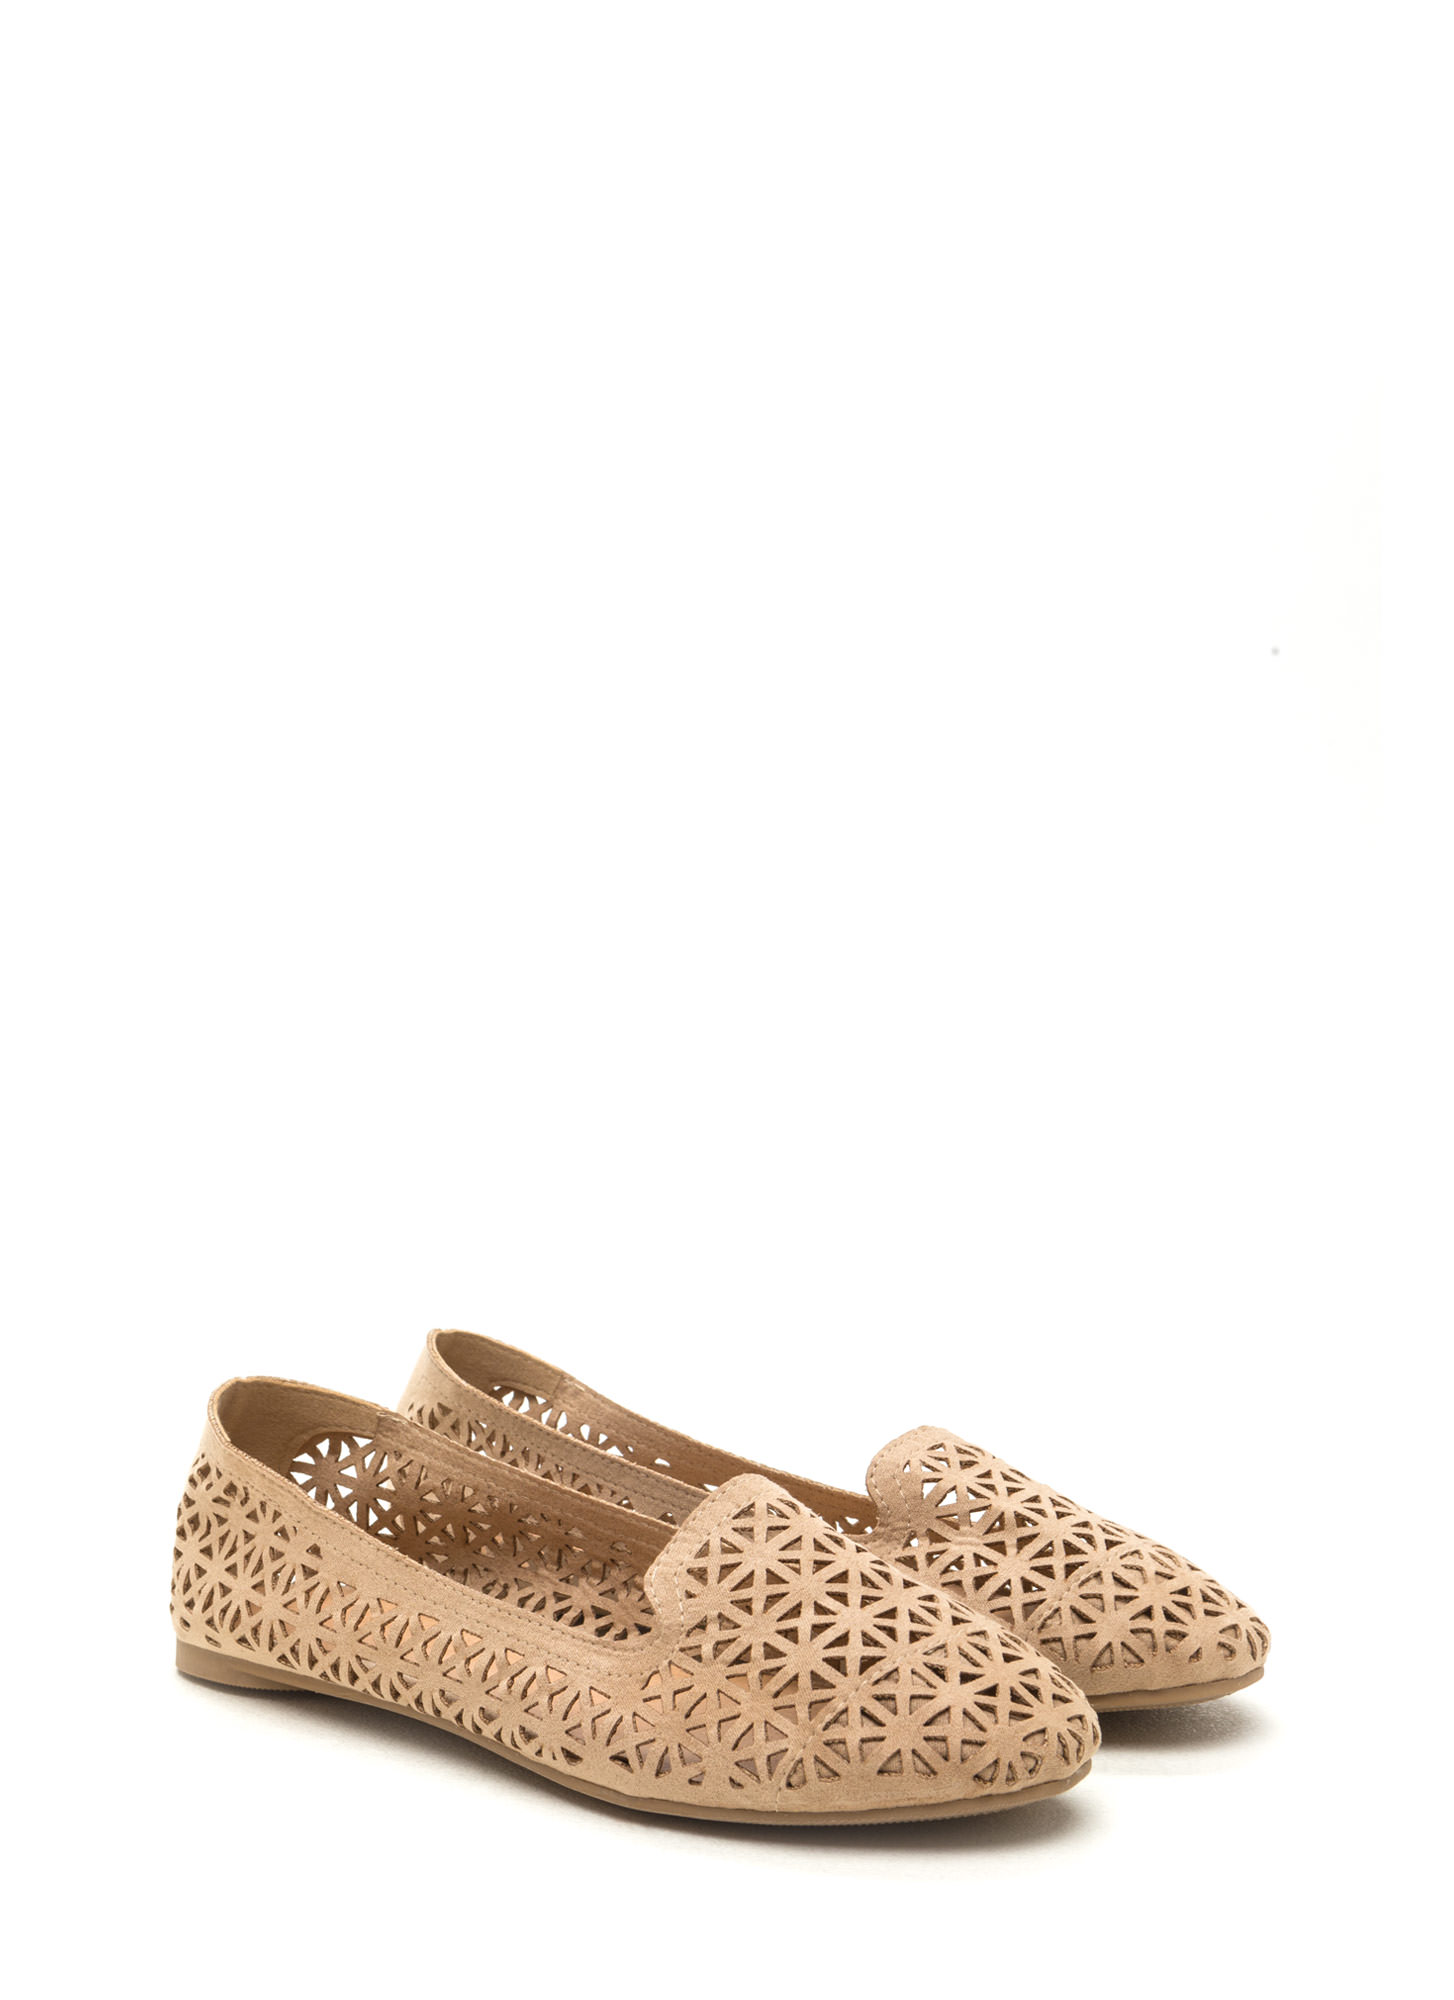 Stand Tall Cut-Out Faux Suede Flats NATURAL